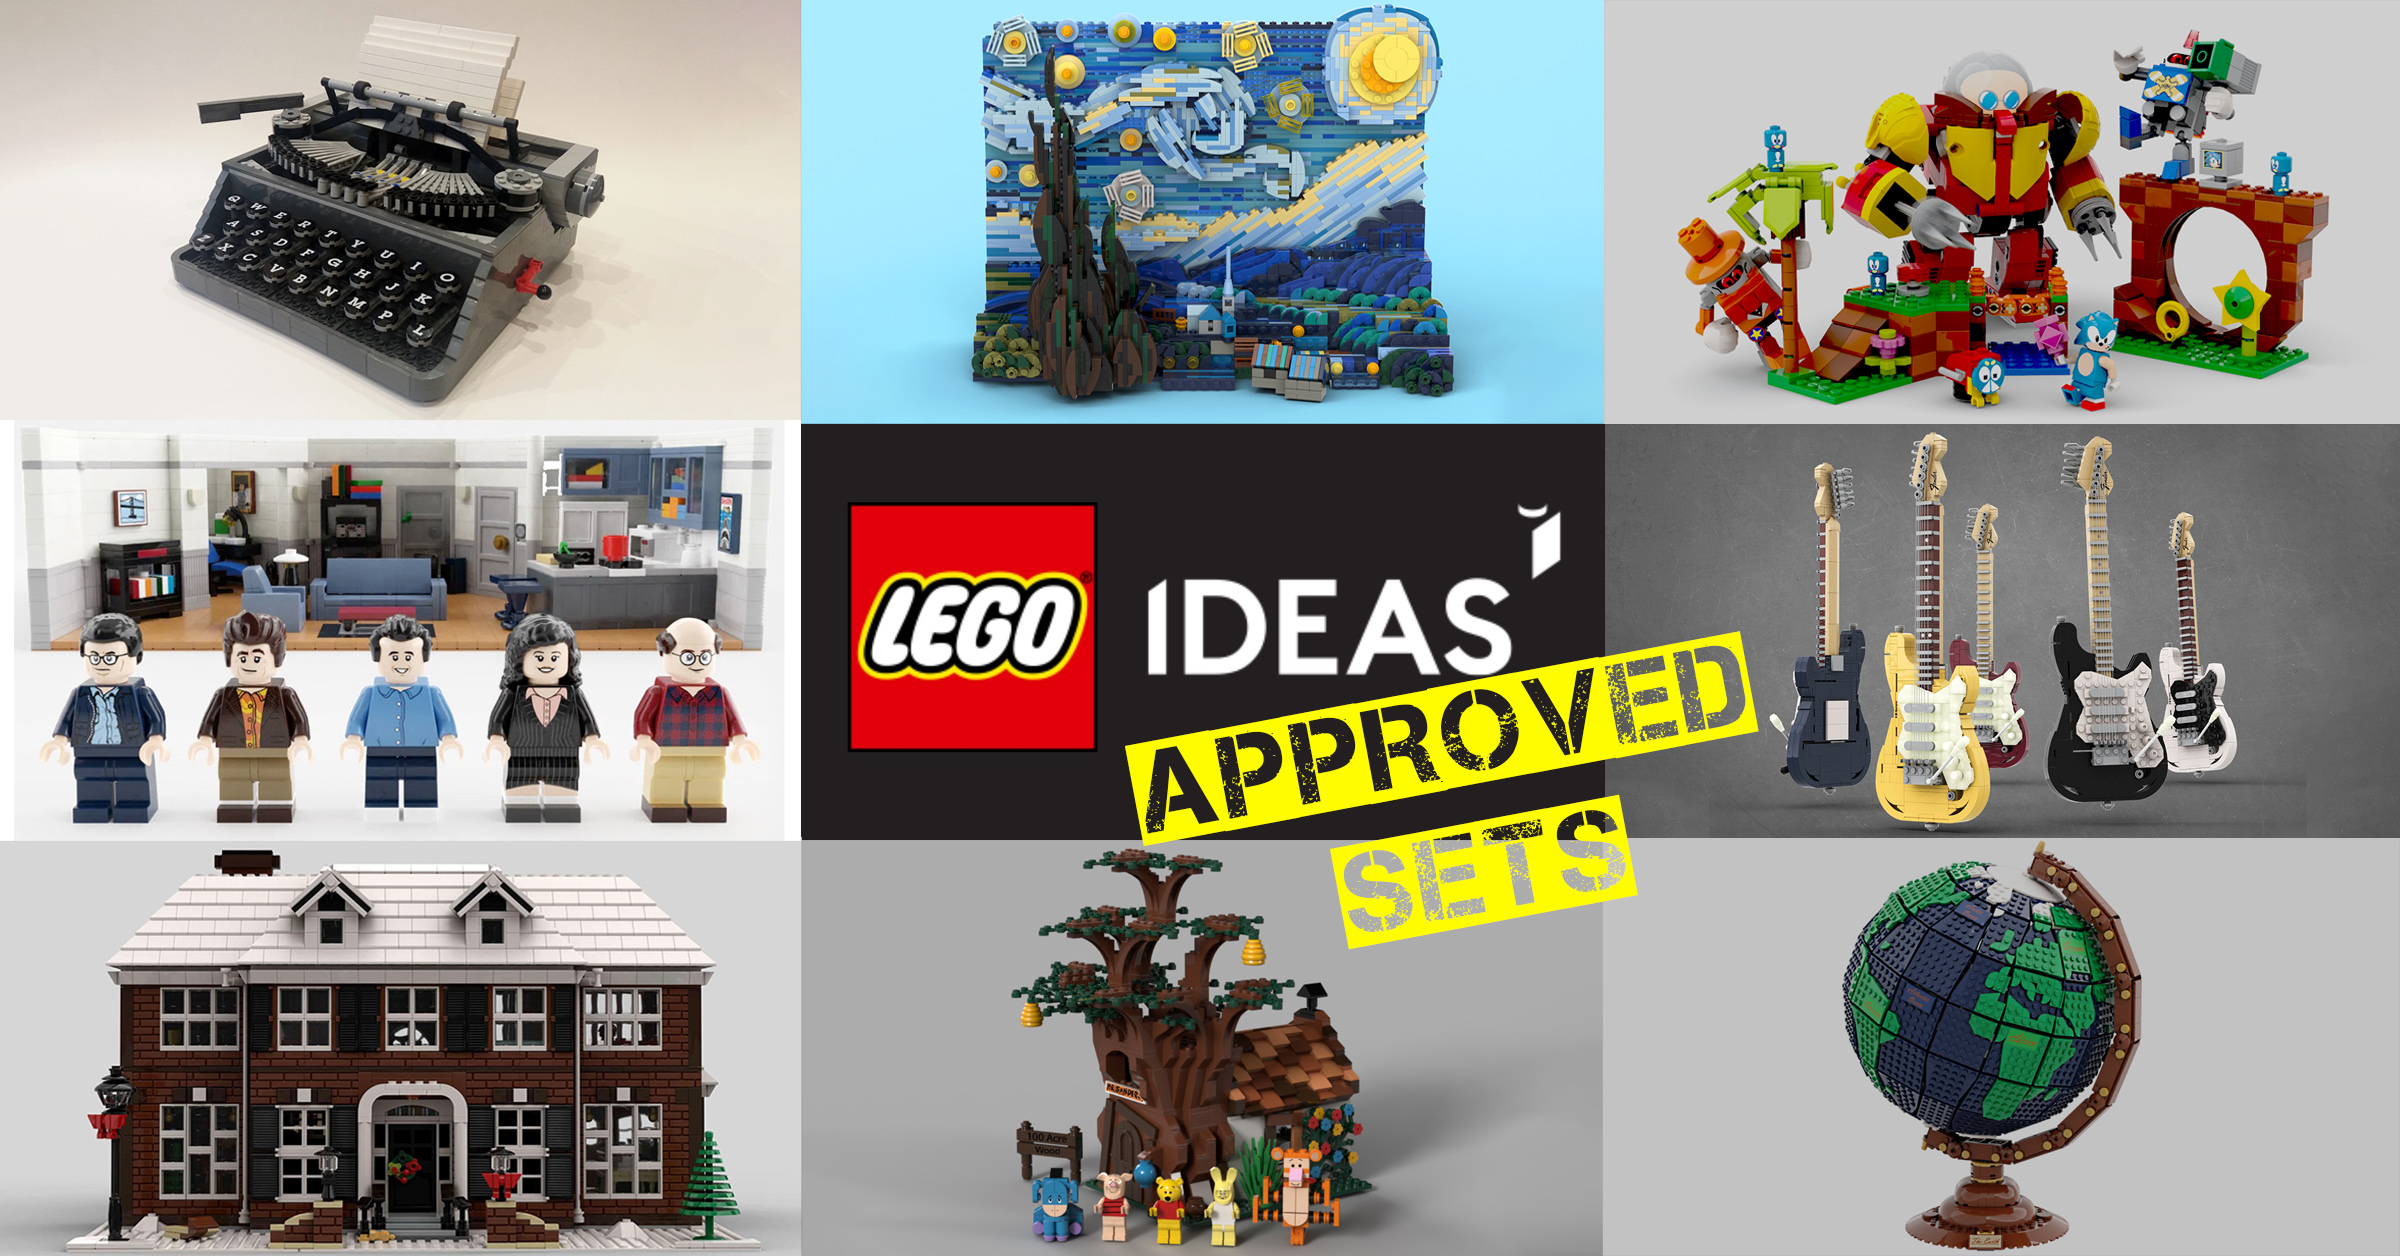 Lego Calendar October 2022.The 8 Approved Lego Ideas Winners Under Development To Be Released As Lego Sets News The Brothers Brick The Brothers Brick